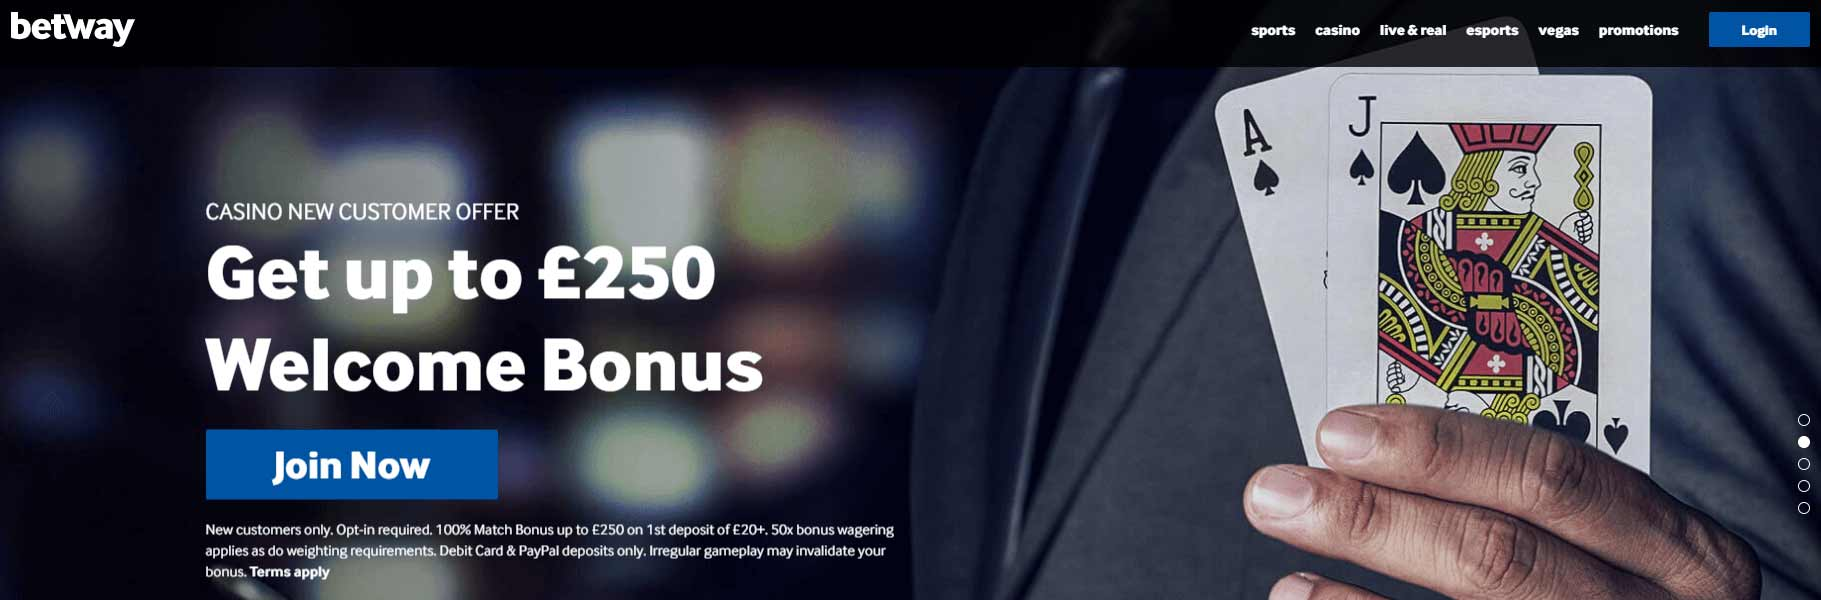 betway online casino welcome offer